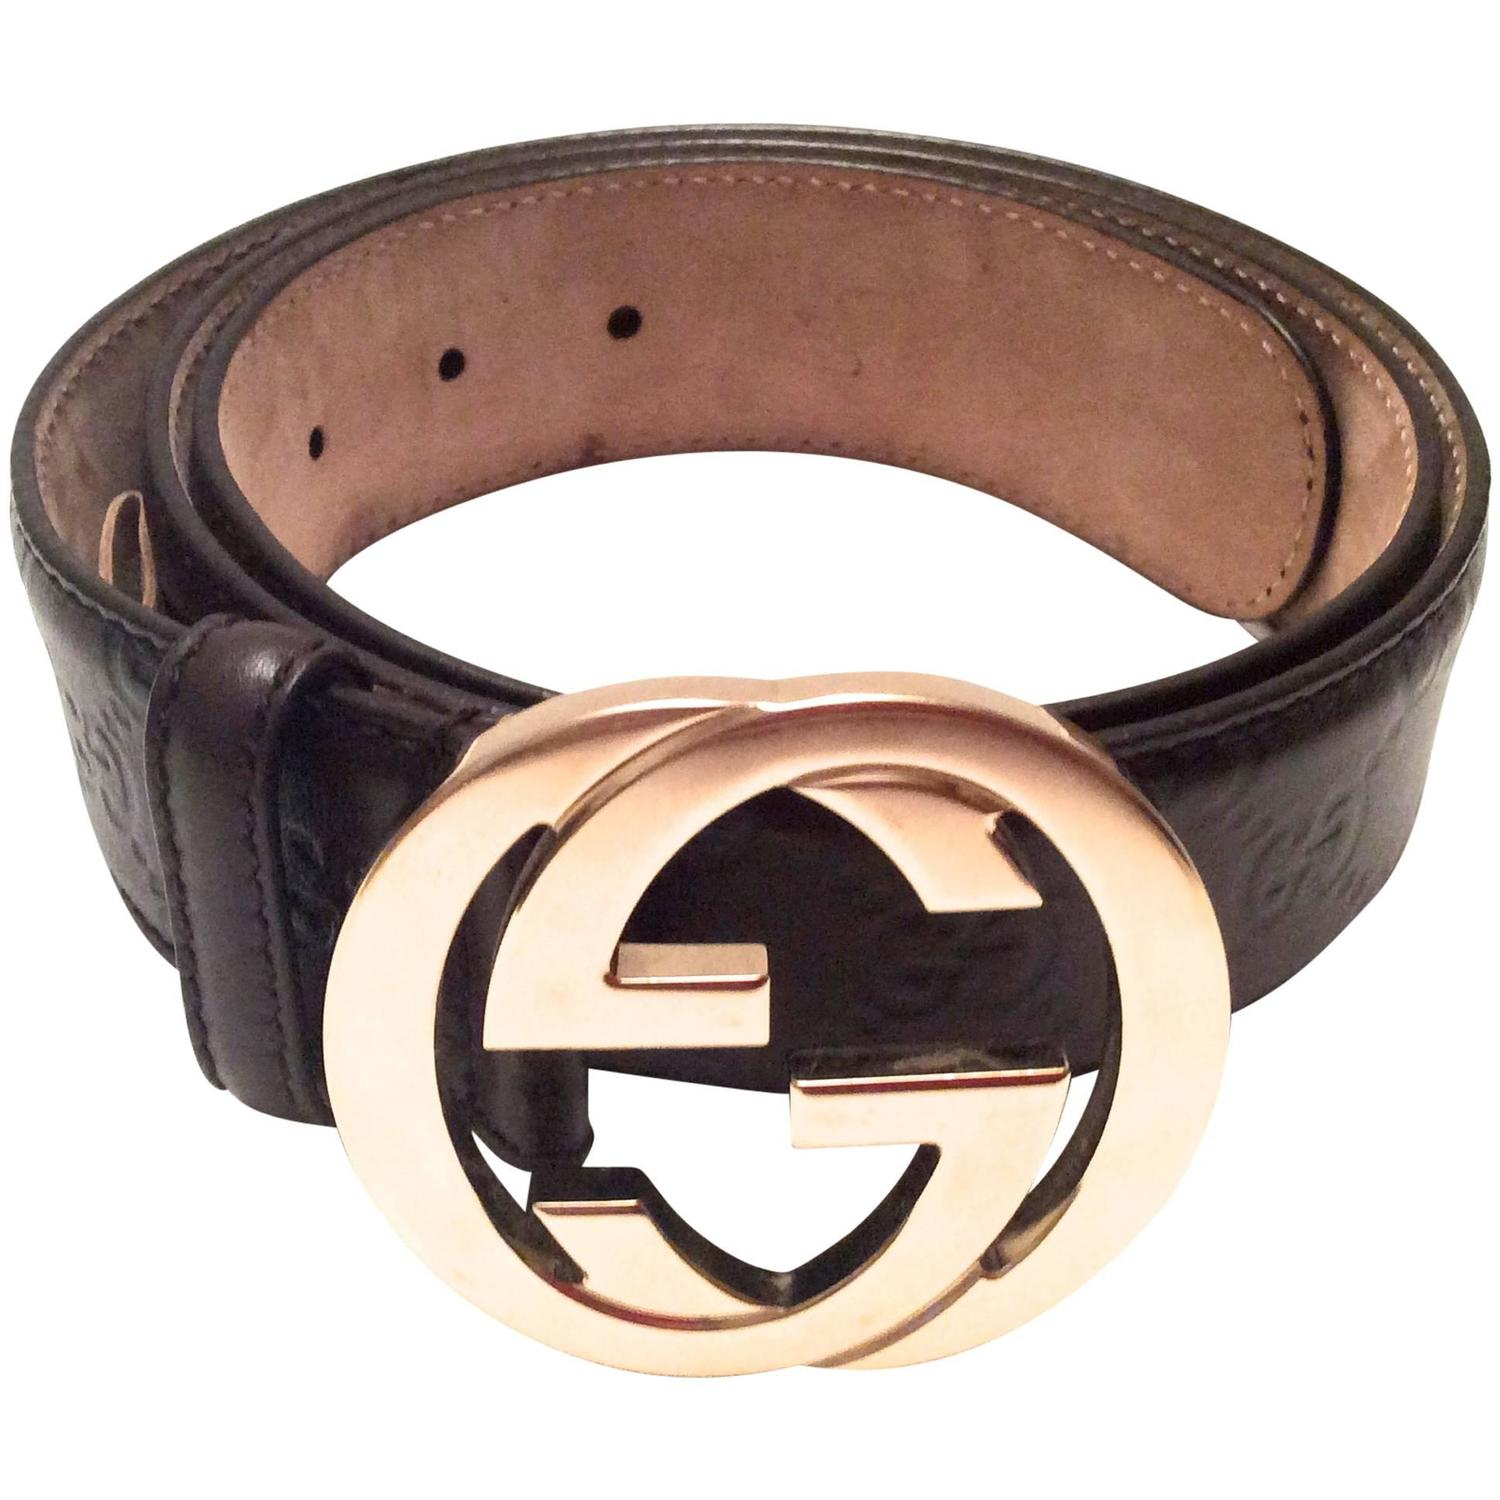 s gucci brown leather belt like new for sale at 1stdibs